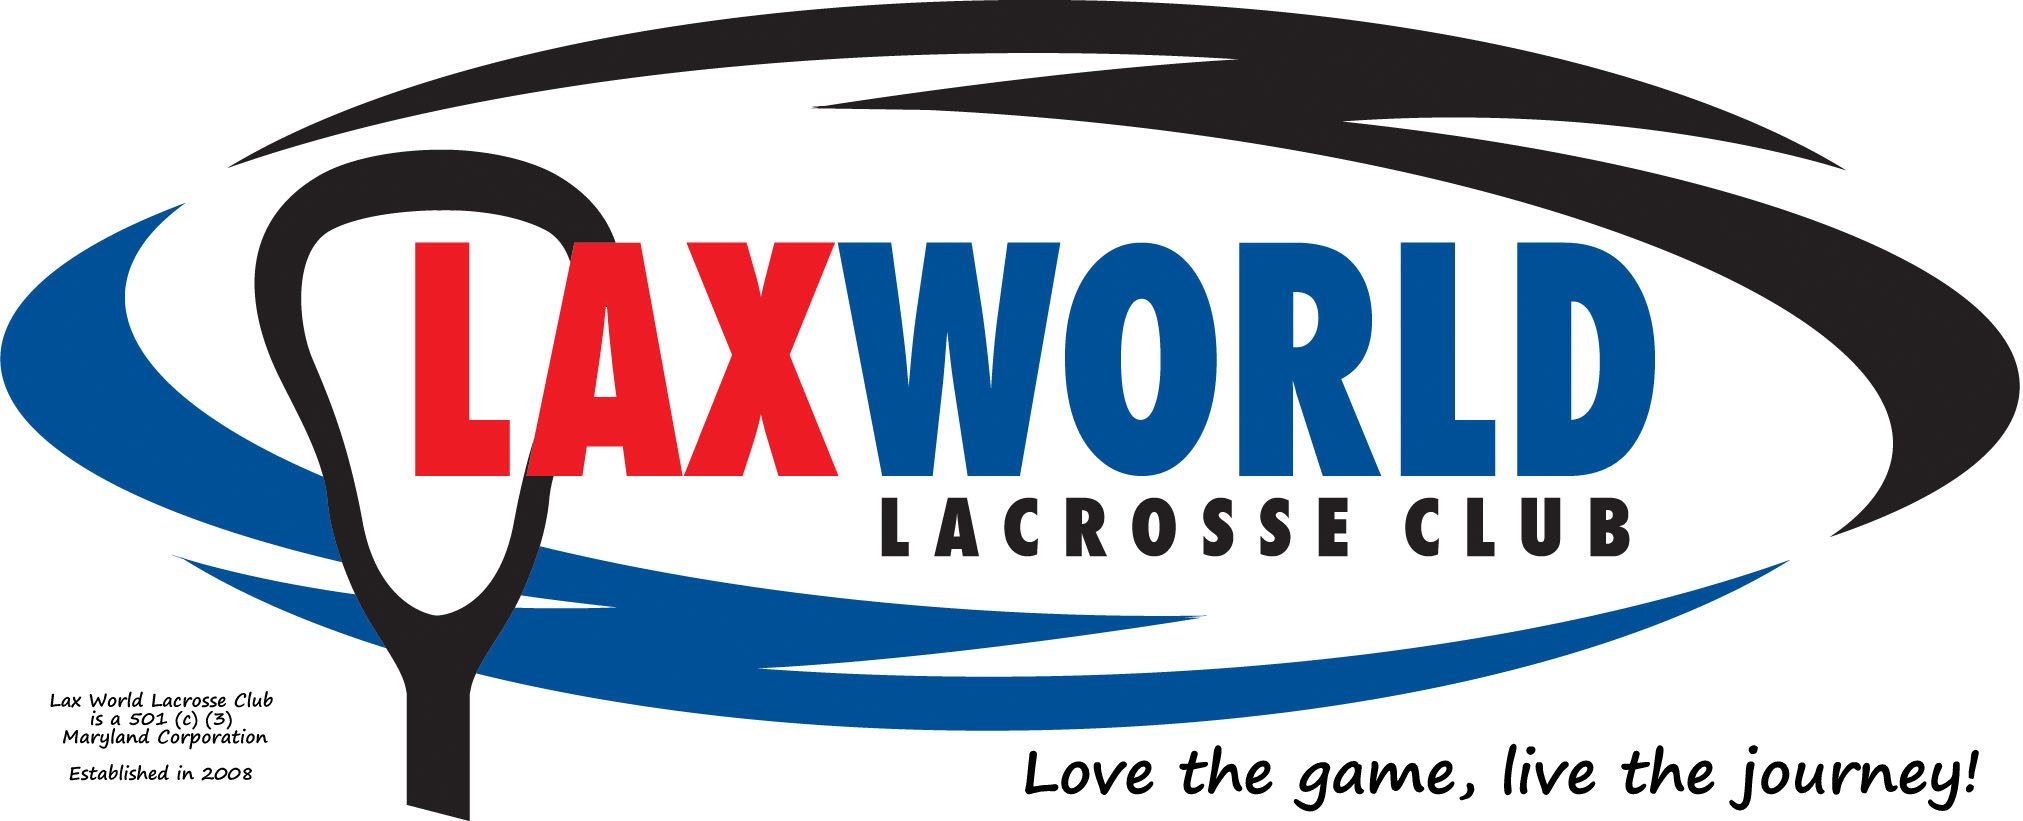 Lax World Lacrosse Club, Lacrosse, Goal, Field